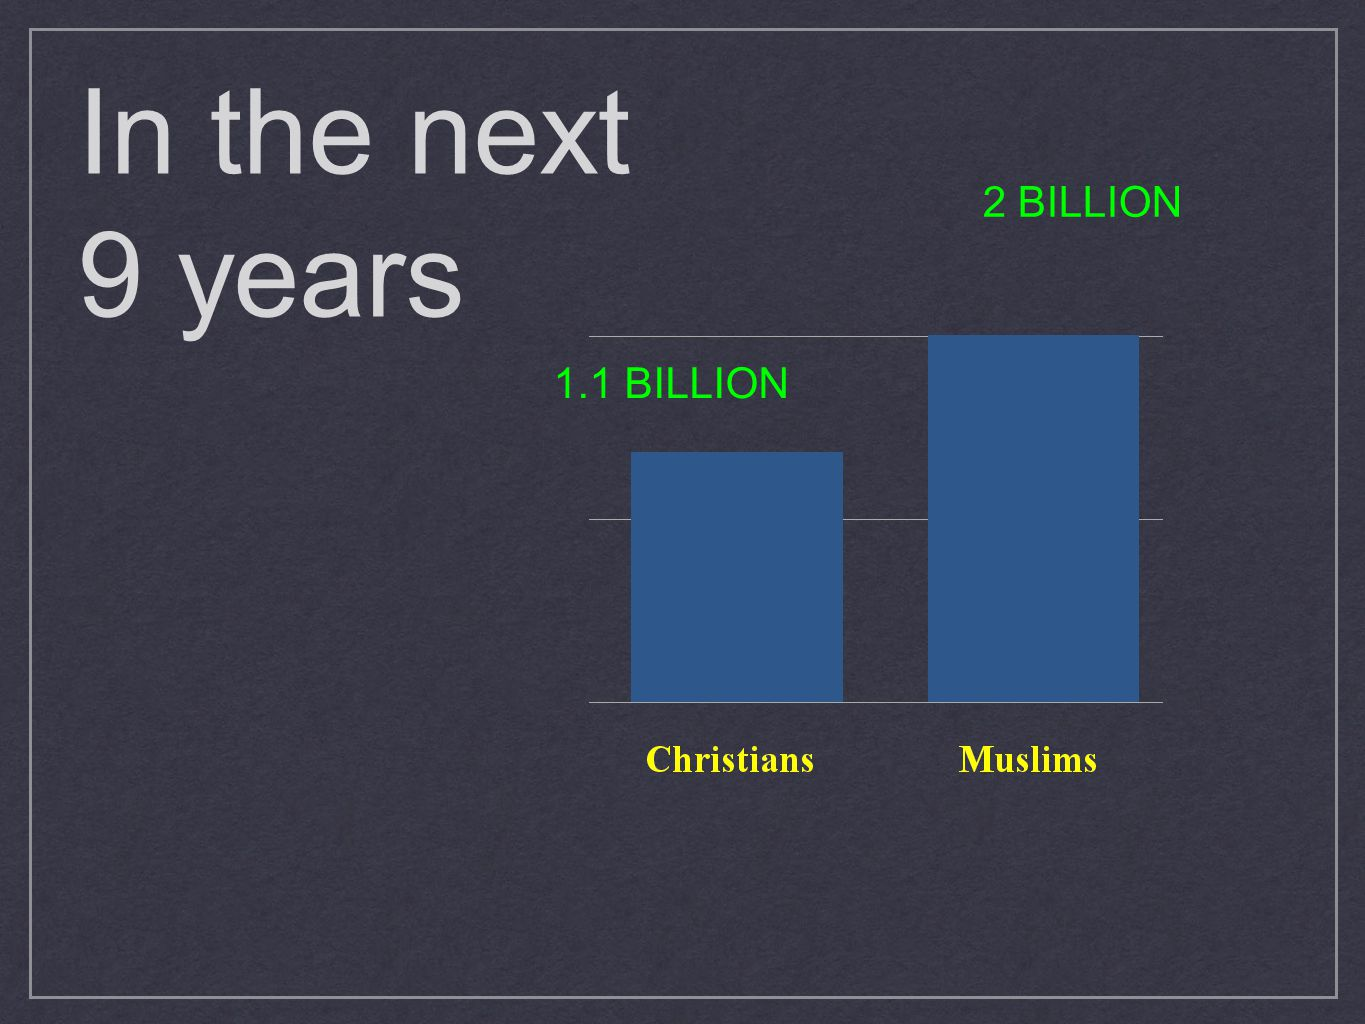 In the next 9 years 2 BILLION 1.1 BILLION